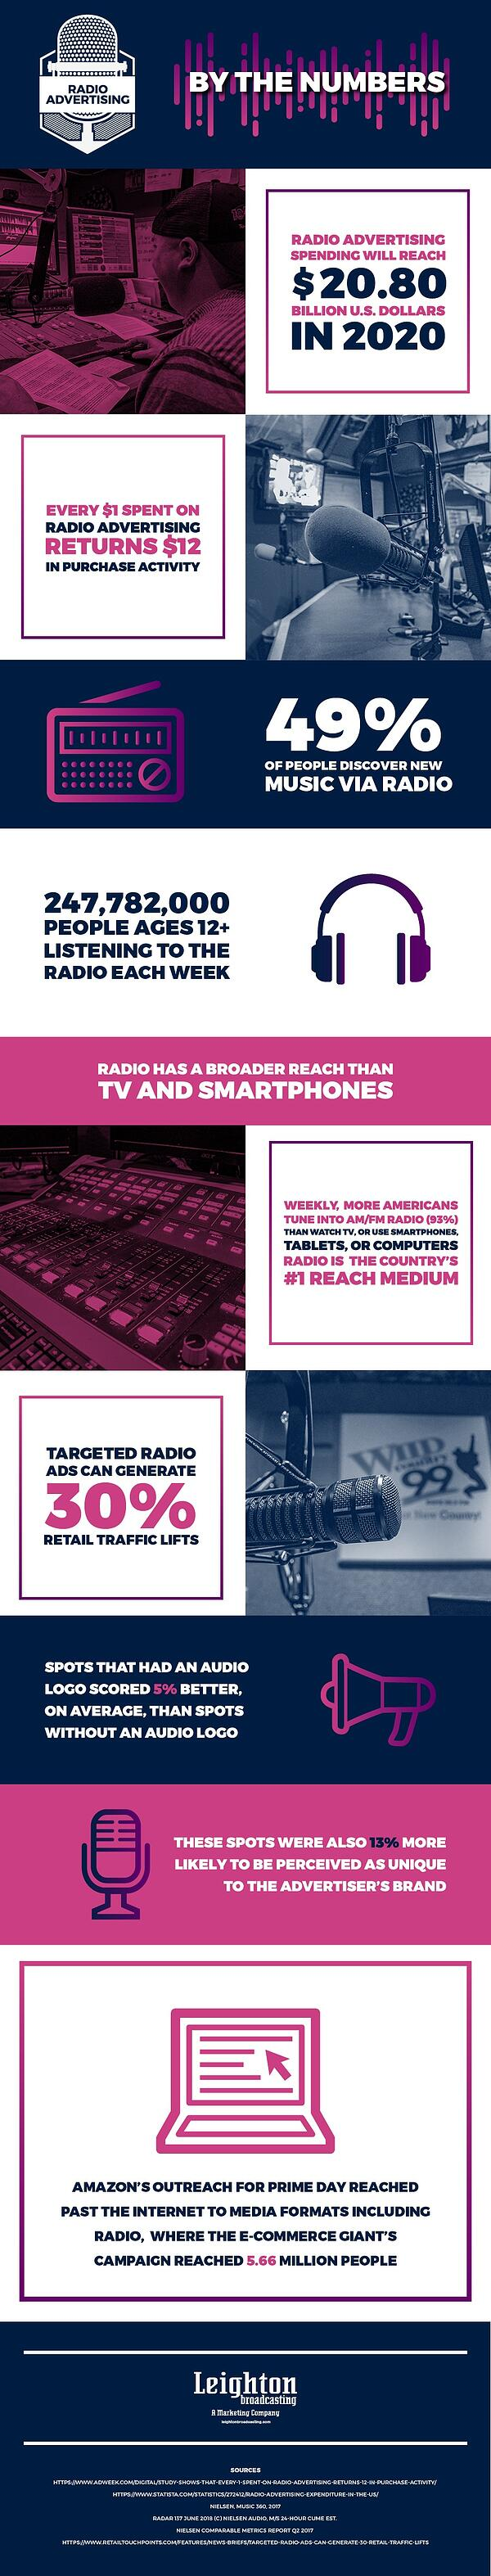 LB-Radio-Advertising-Numbers-Infographic-08-06-2018-Final